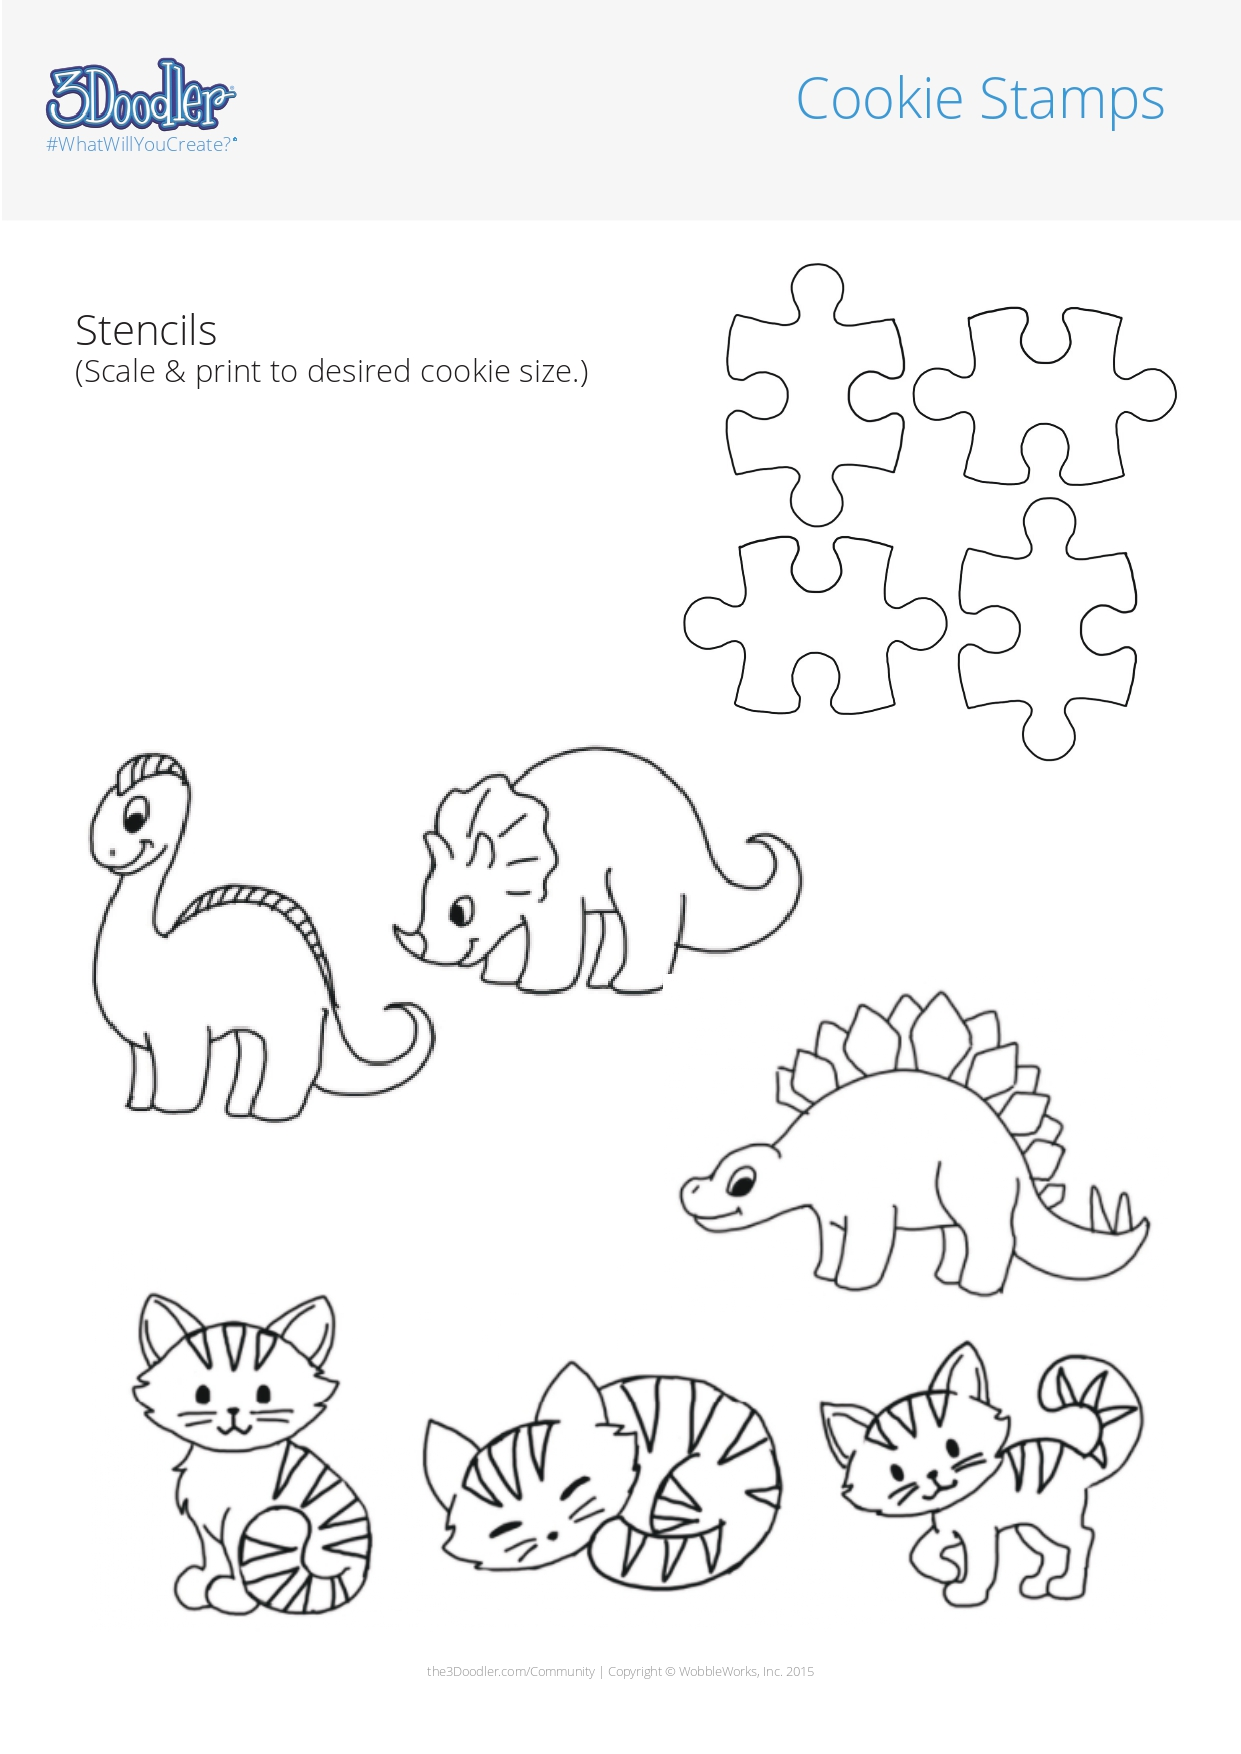 3D Pen Stencil Template Cookie Stamps